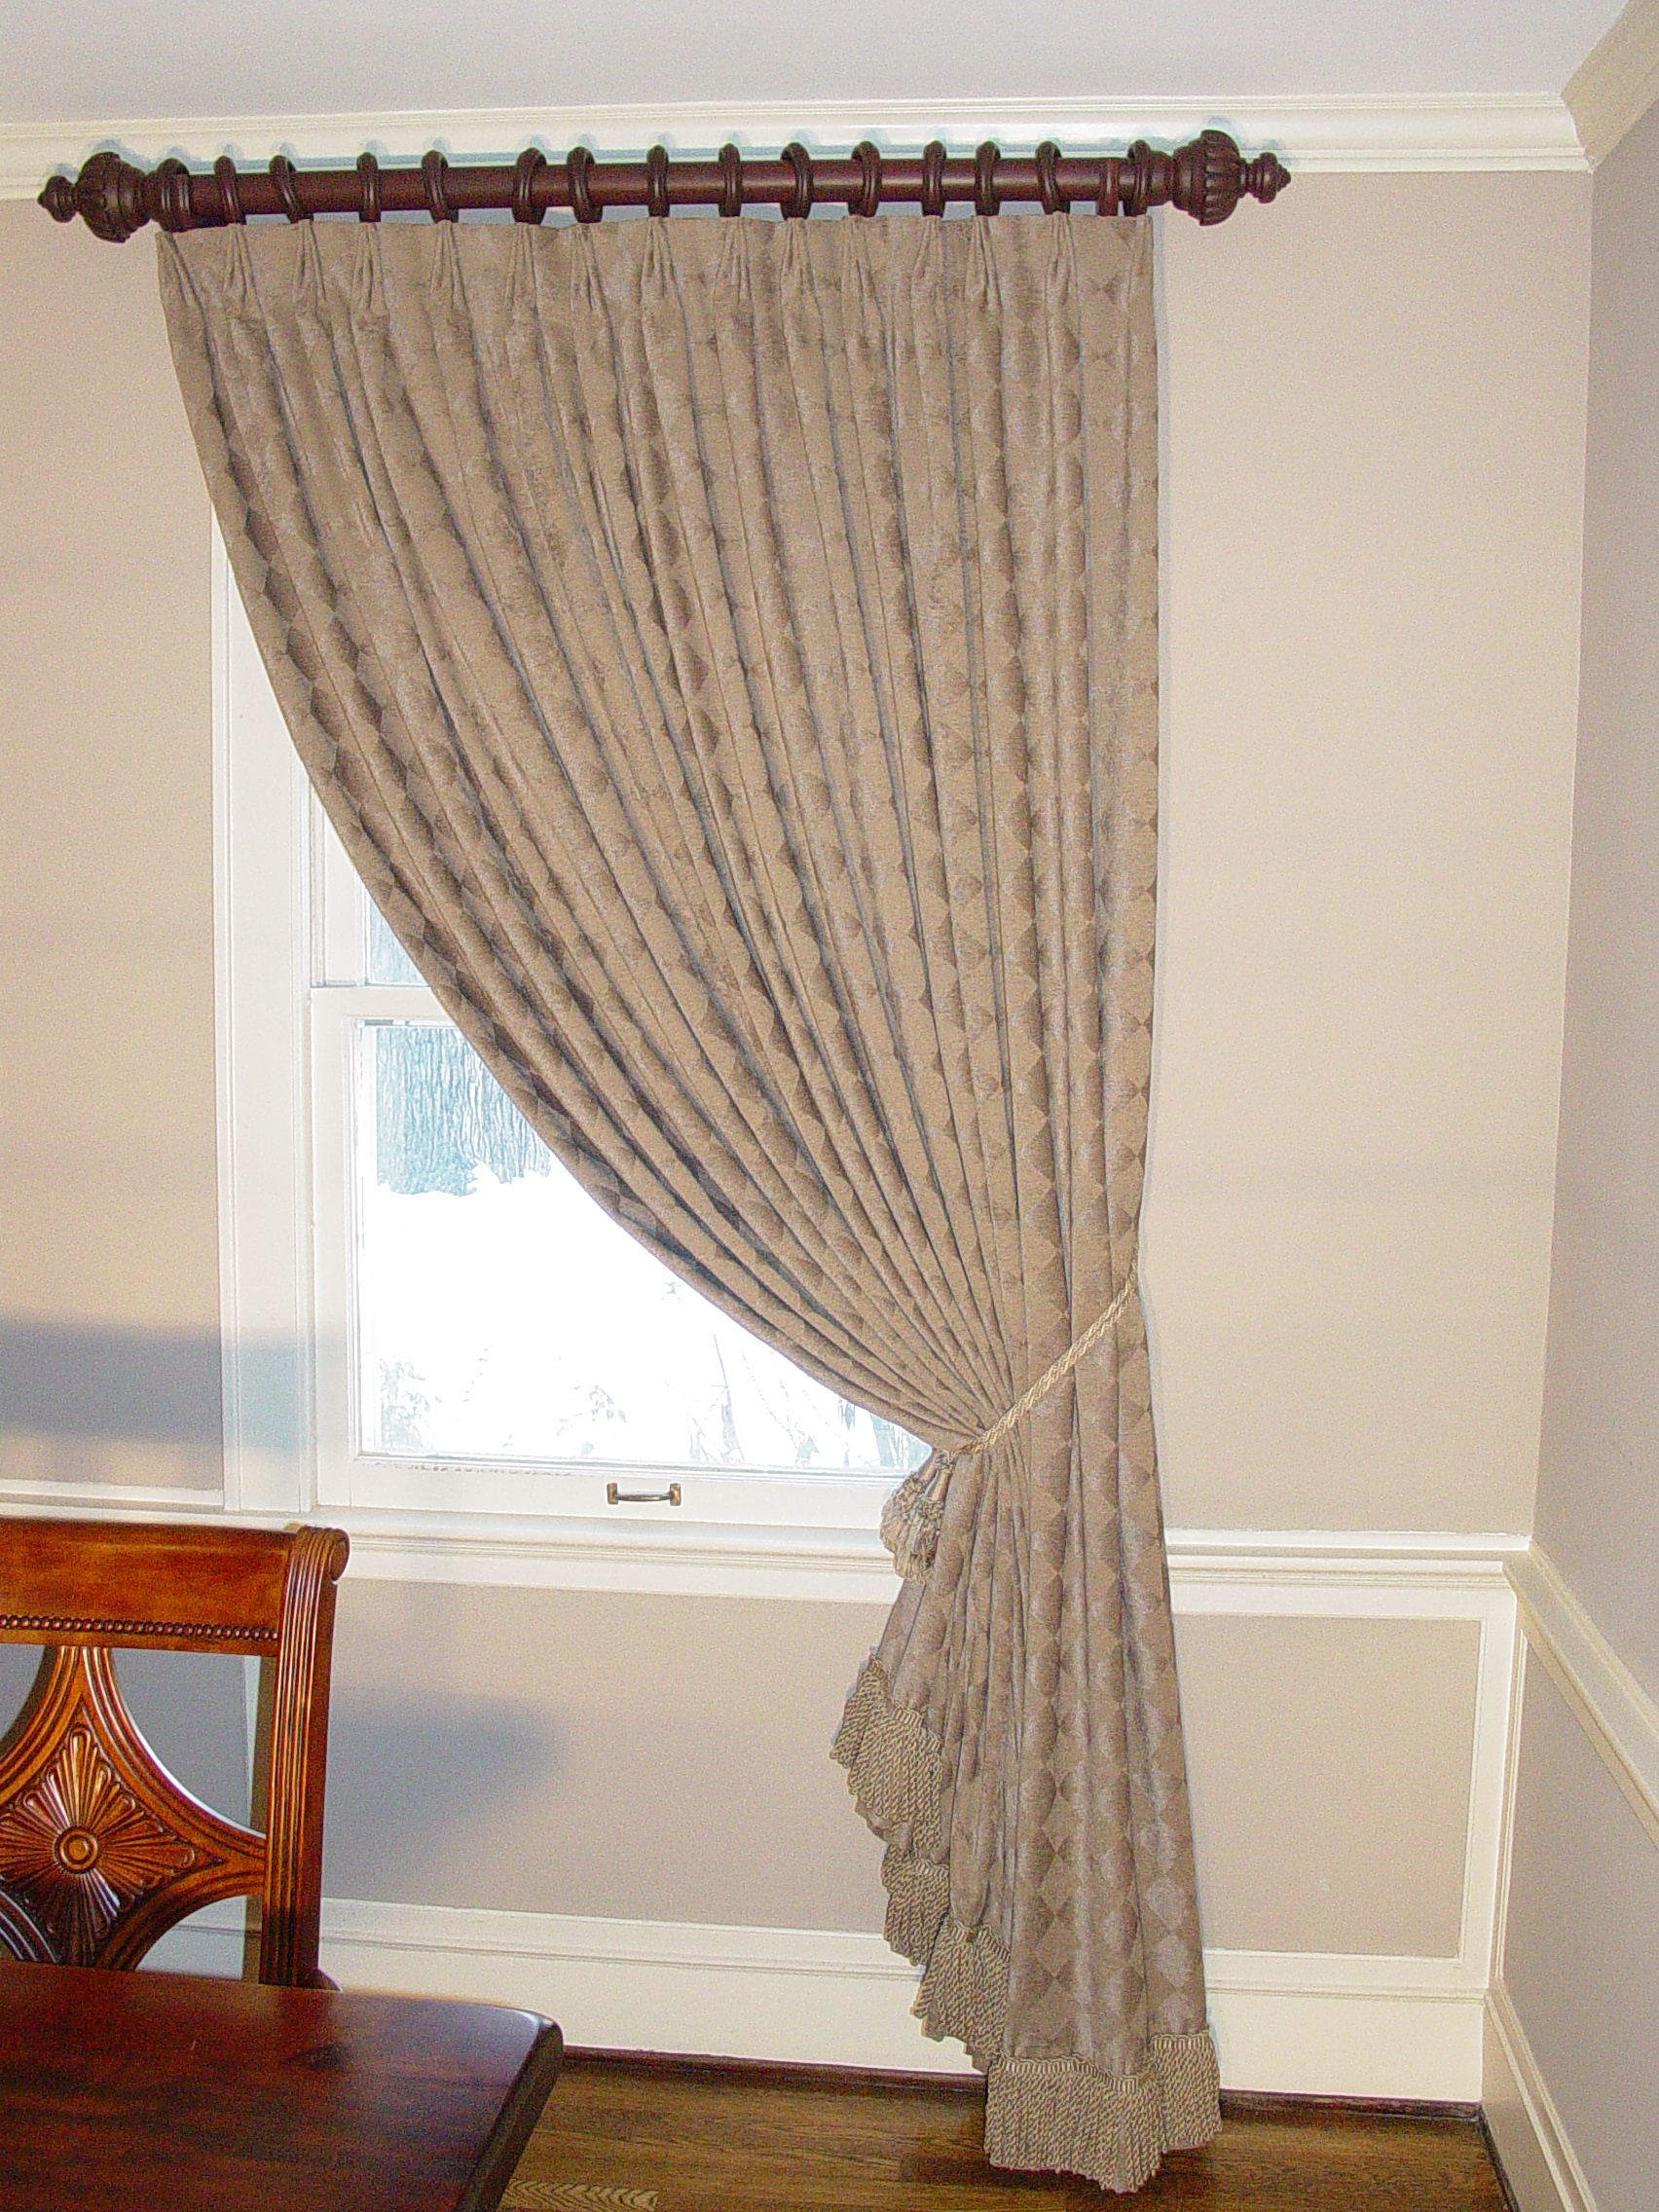 We Offer: Custom Draperies, Valences, Blinds, Shades And Wood Shutters For  Home, Office, Conference Center, Meeting Rooms, Board Room, Restaurants,  Hotels, ...